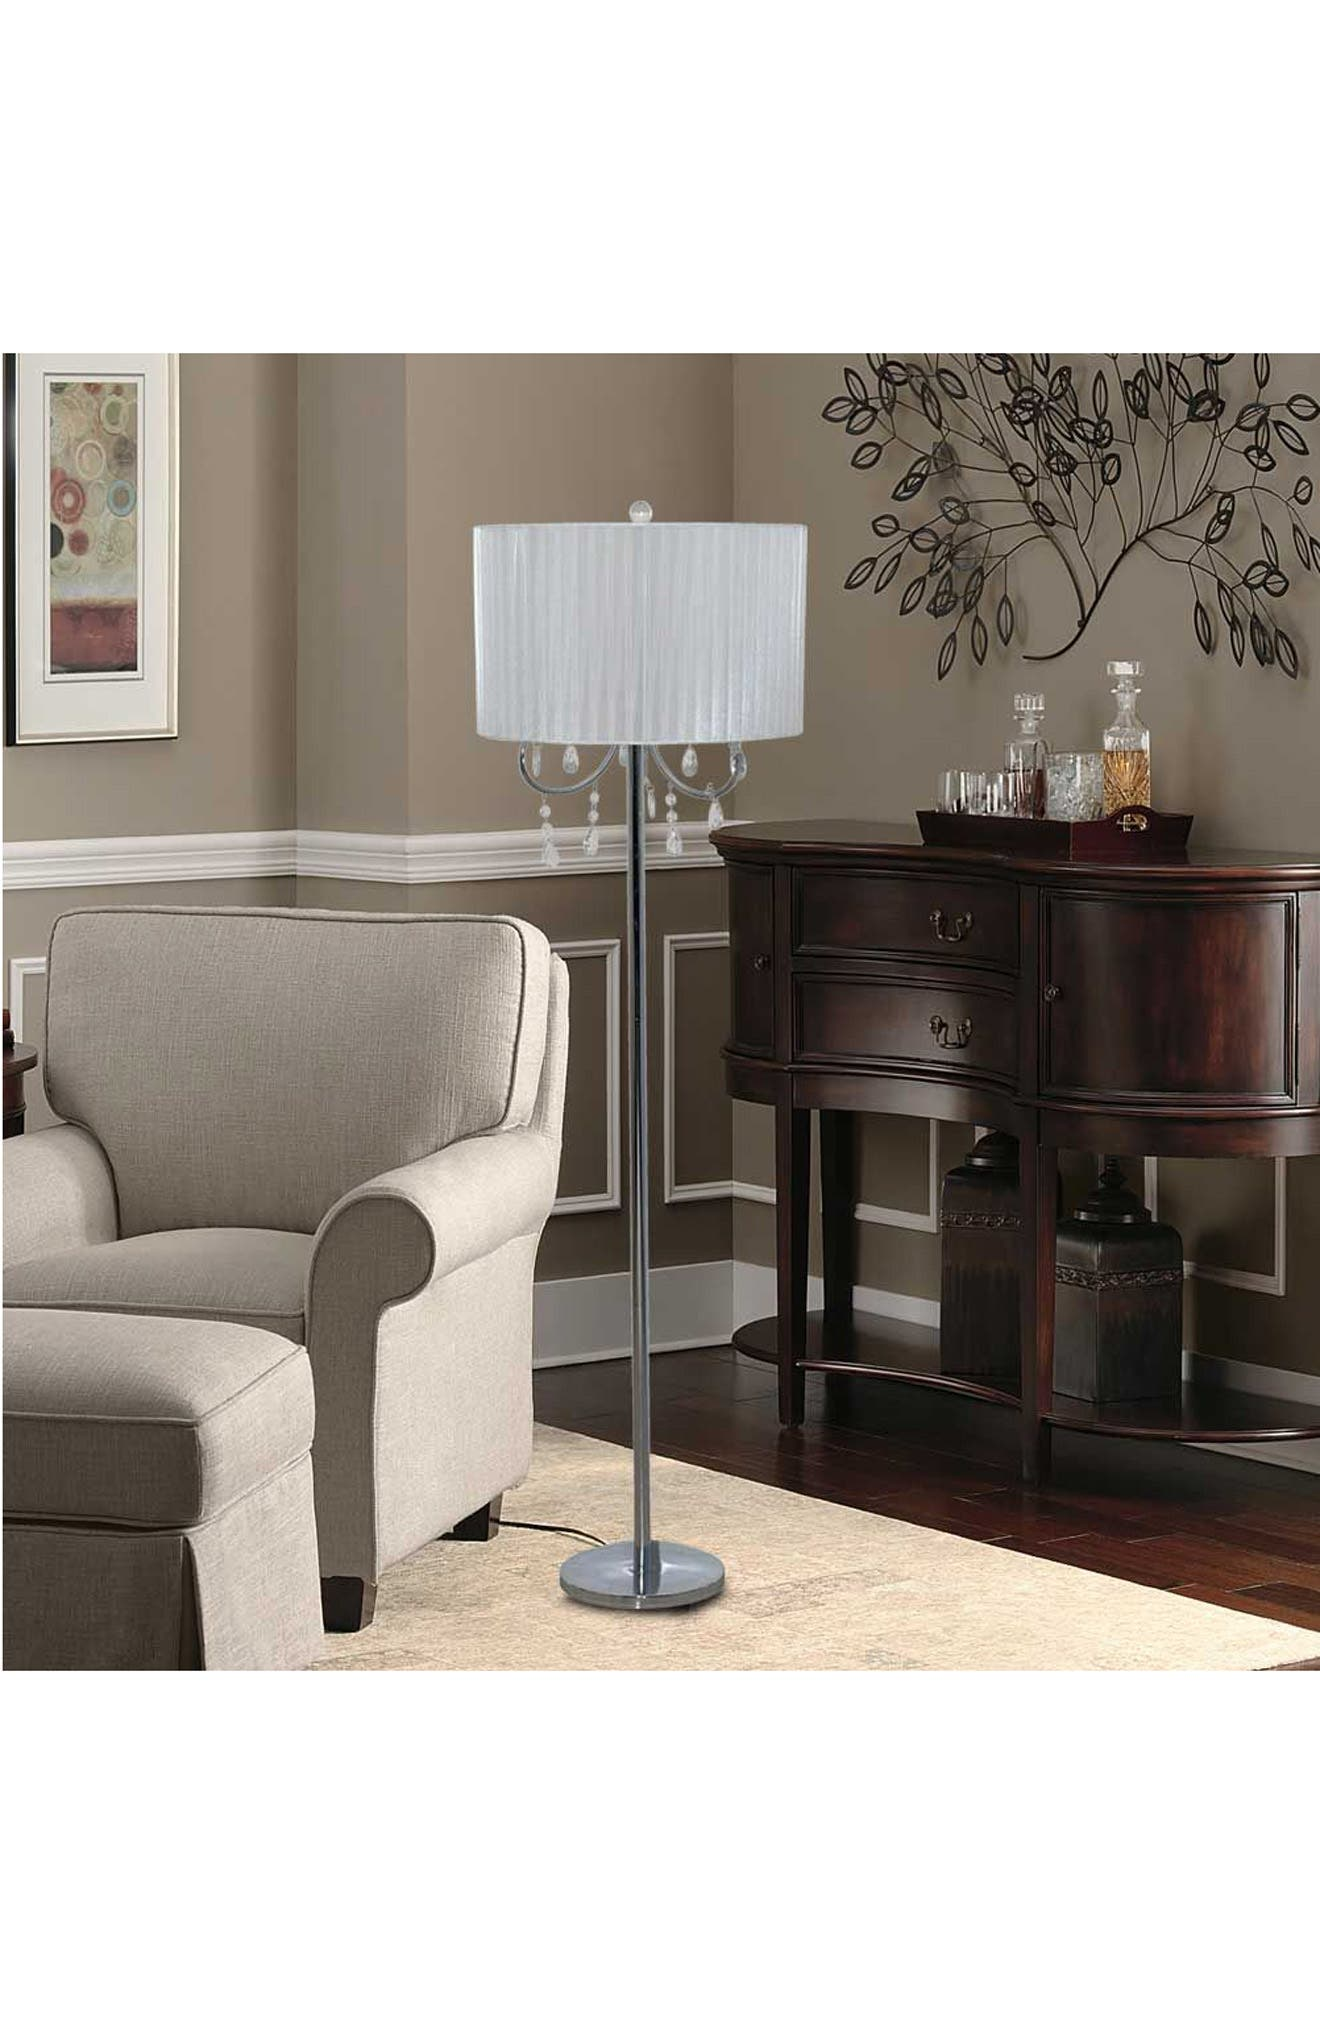 JAlexander Chandelier Floor Lamp,                             Alternate thumbnail 2, color,                             100